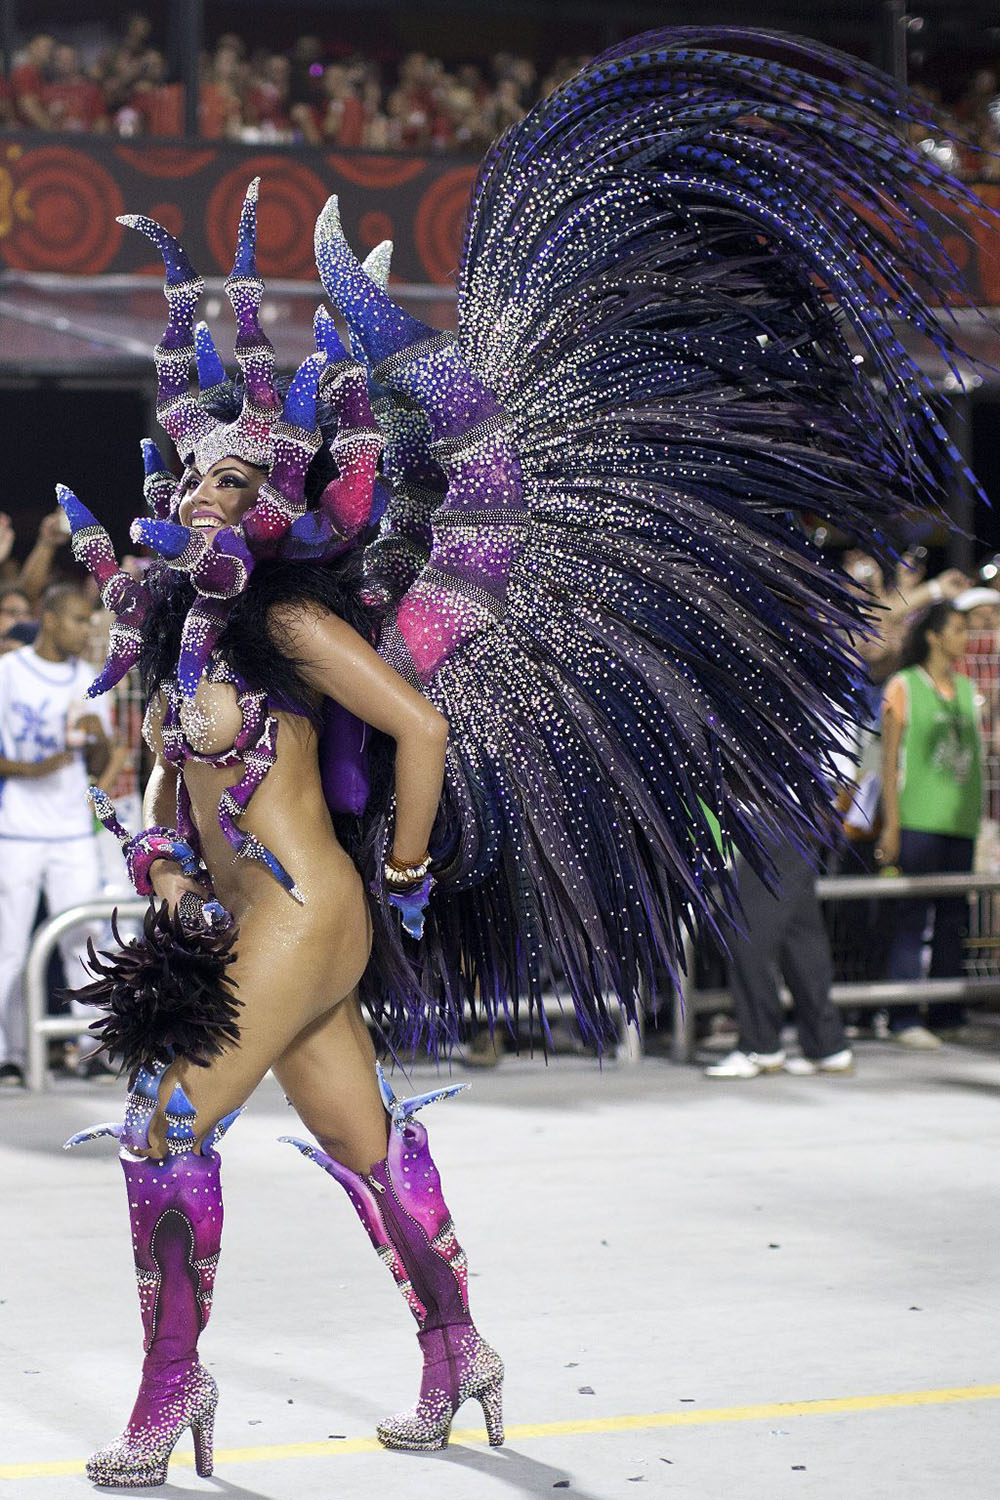 epa03576134 A member of Samba school Nene, from Vila Matilde district, takes part in a parade at the Sambodromo of Anhebi in Sao Paulo, Brazil, 09 February 2013. This is the second day of carnival in Sao Paulo.  EPA/SEBASTIAO MOREIRA